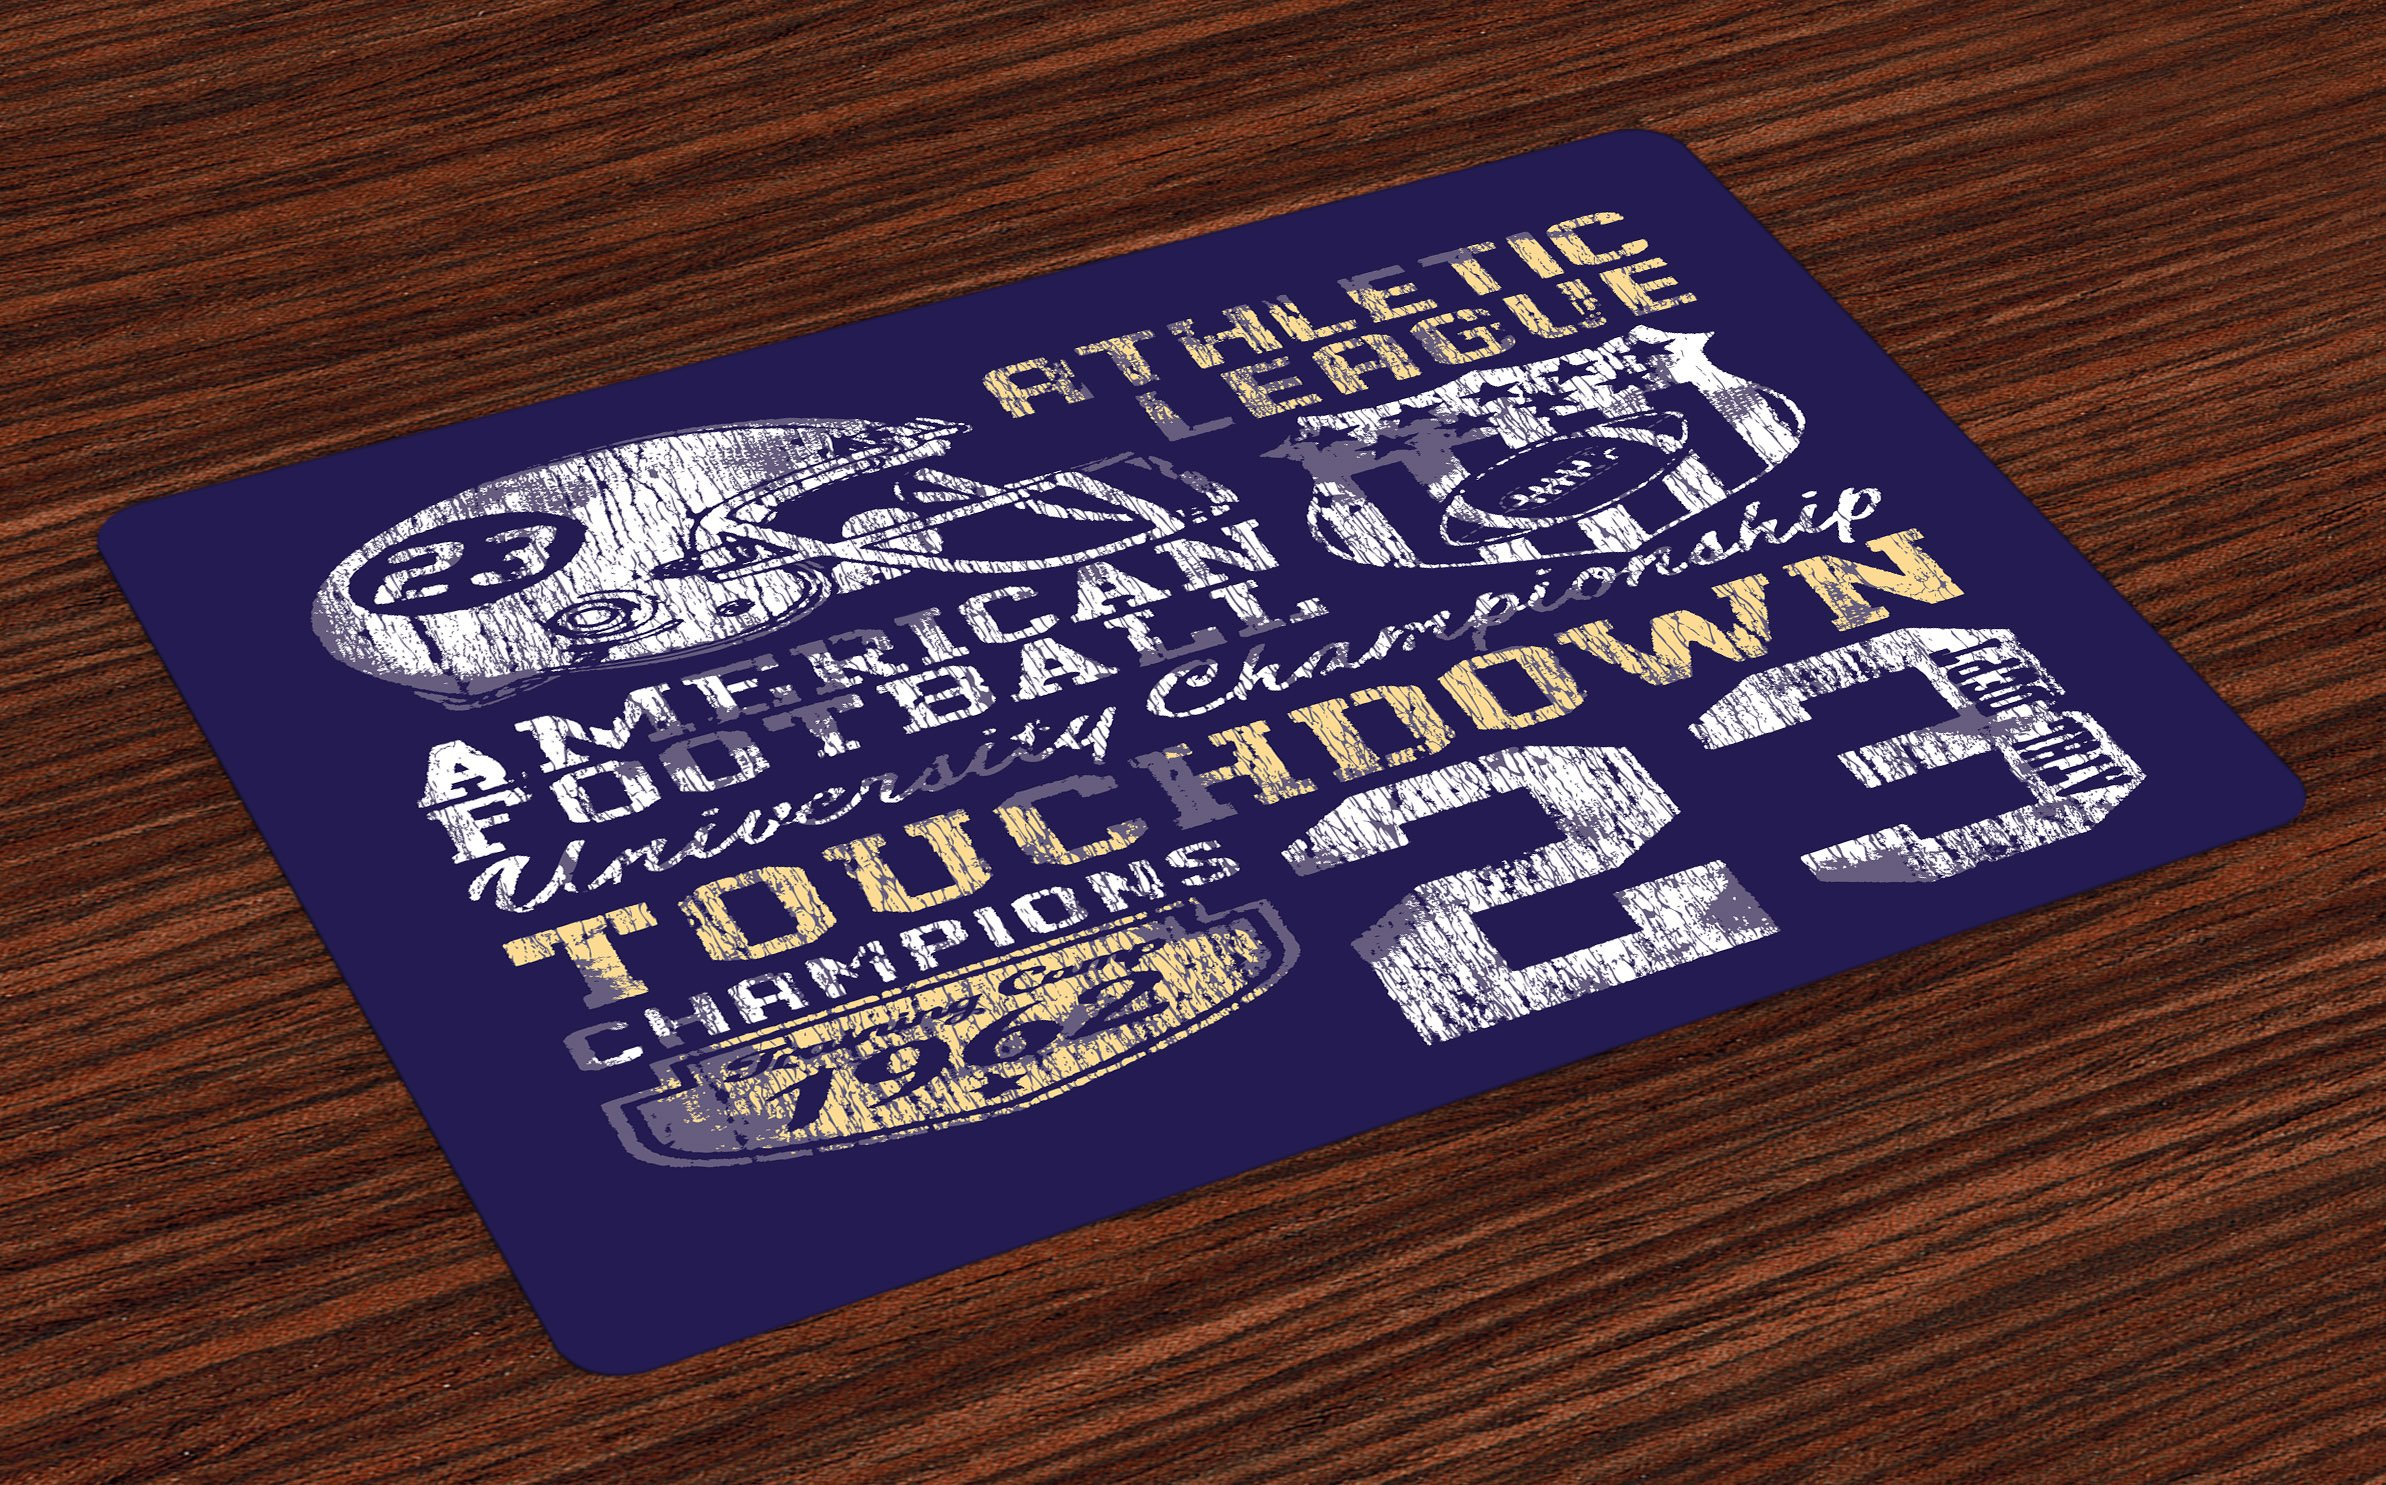 Ambesonne Sports Place Mats, Retro Style American Football College Theme Illustration Athletic Championship Apparel, Washable Fabric Placemats for Dining Room Kitchen Table Decor, Purple